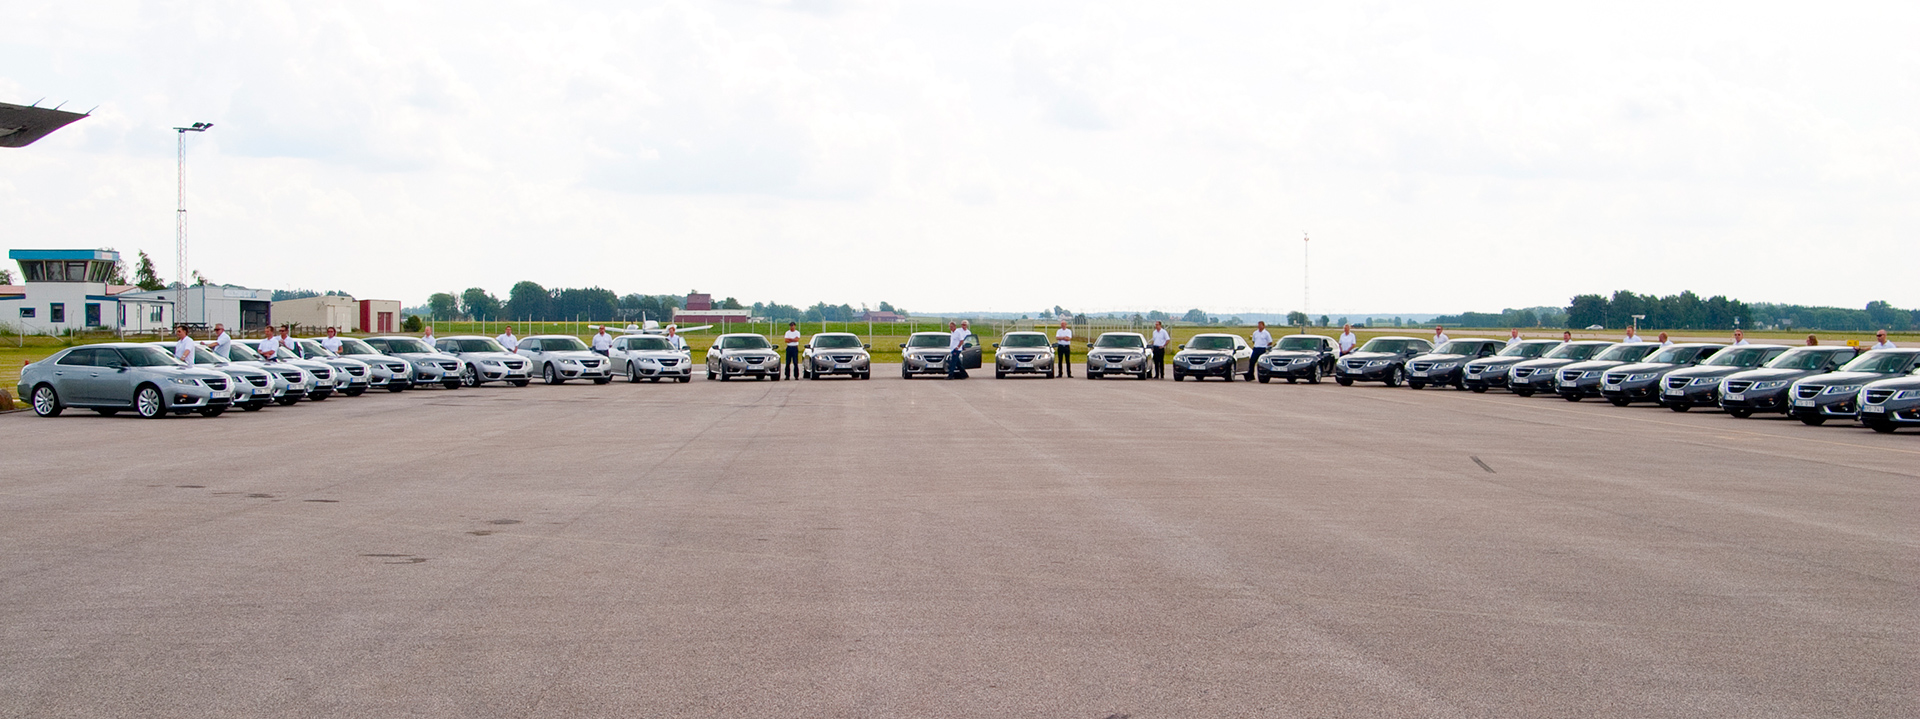 Saab cars lined up at an airfield